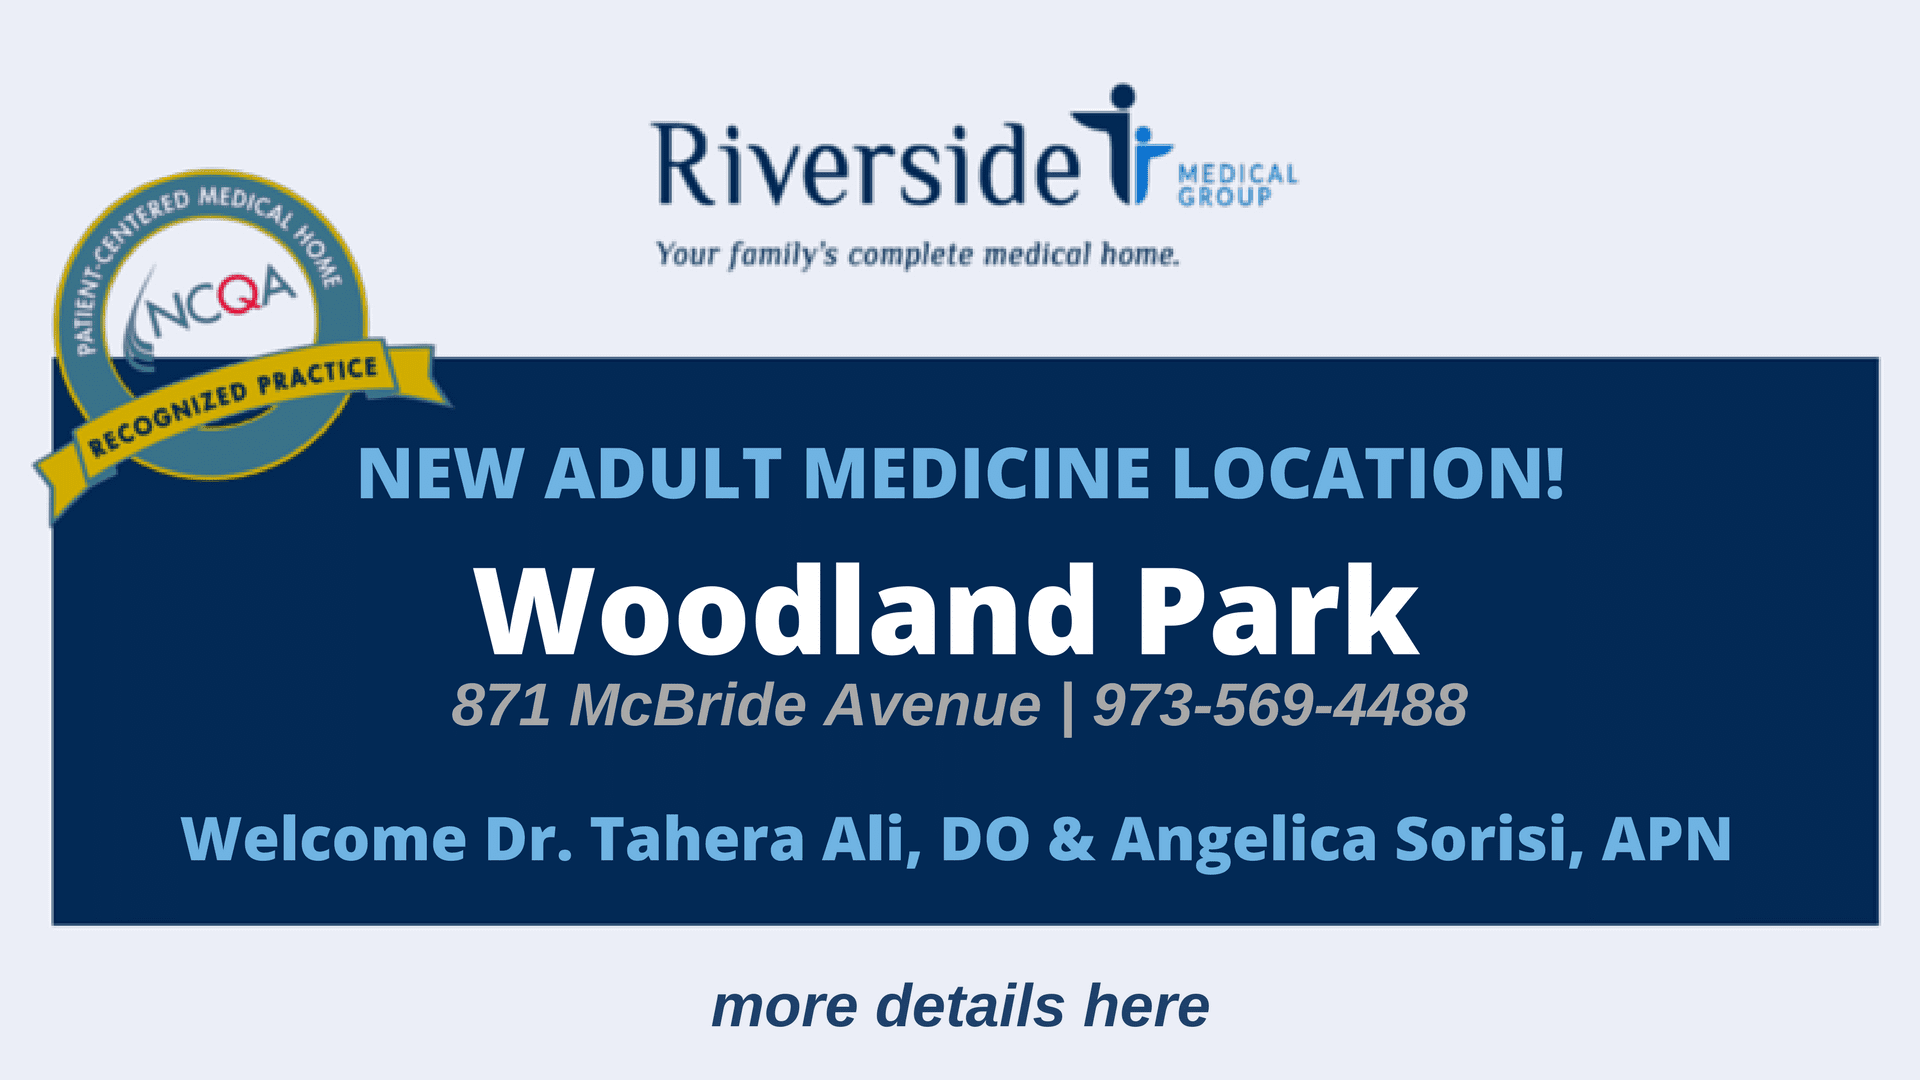 New Adult Medicine Location